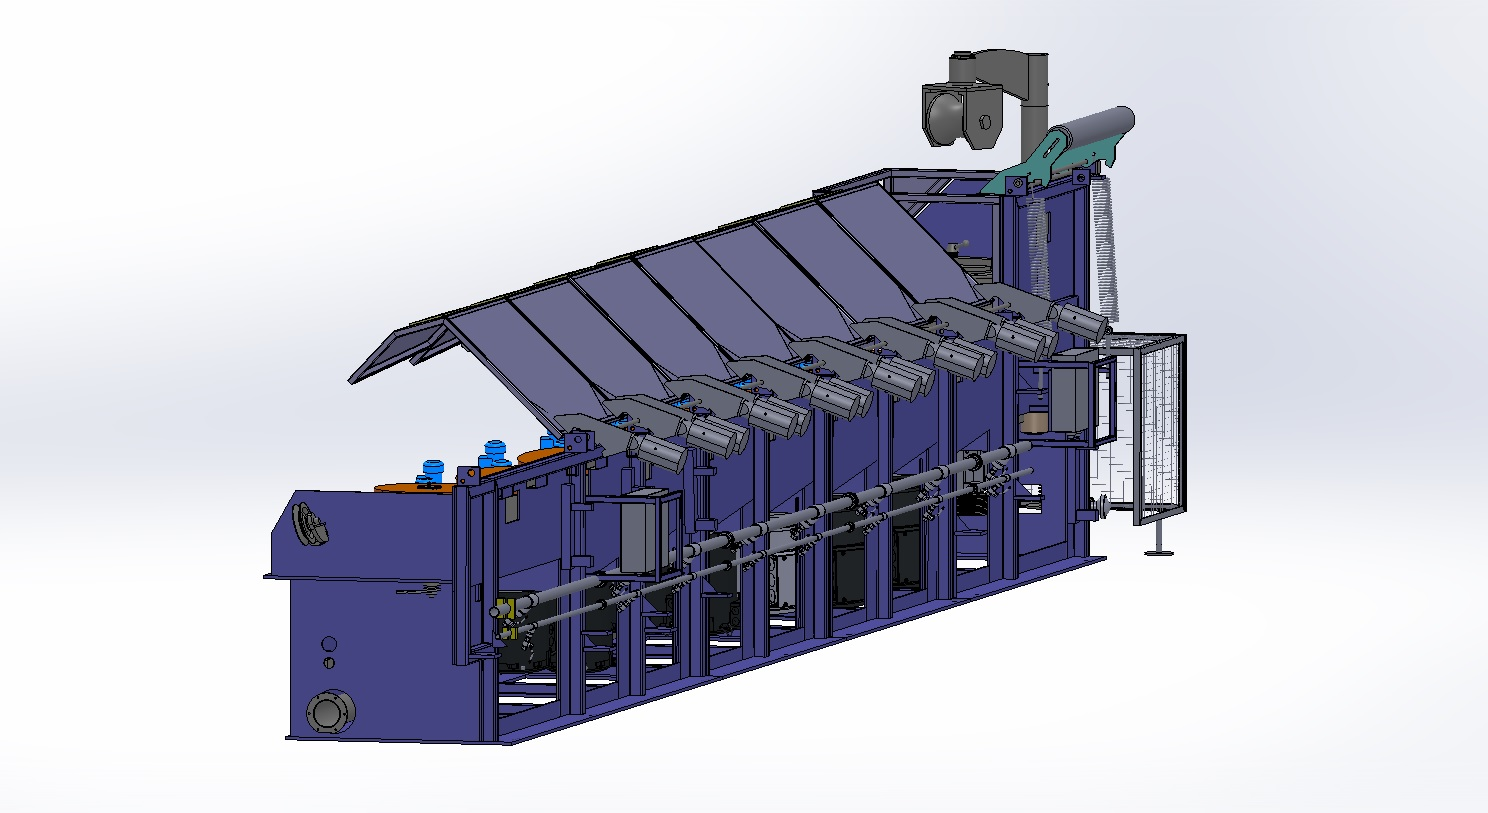 Mekosan Wire Drawing Machine Mashins Wiring Diagram Wires To Facilitate Lifting Transport And Installation The Capstan Relative Die Box Motorsbrakes Safety Guards Water Feed Drainage Tubes Etc